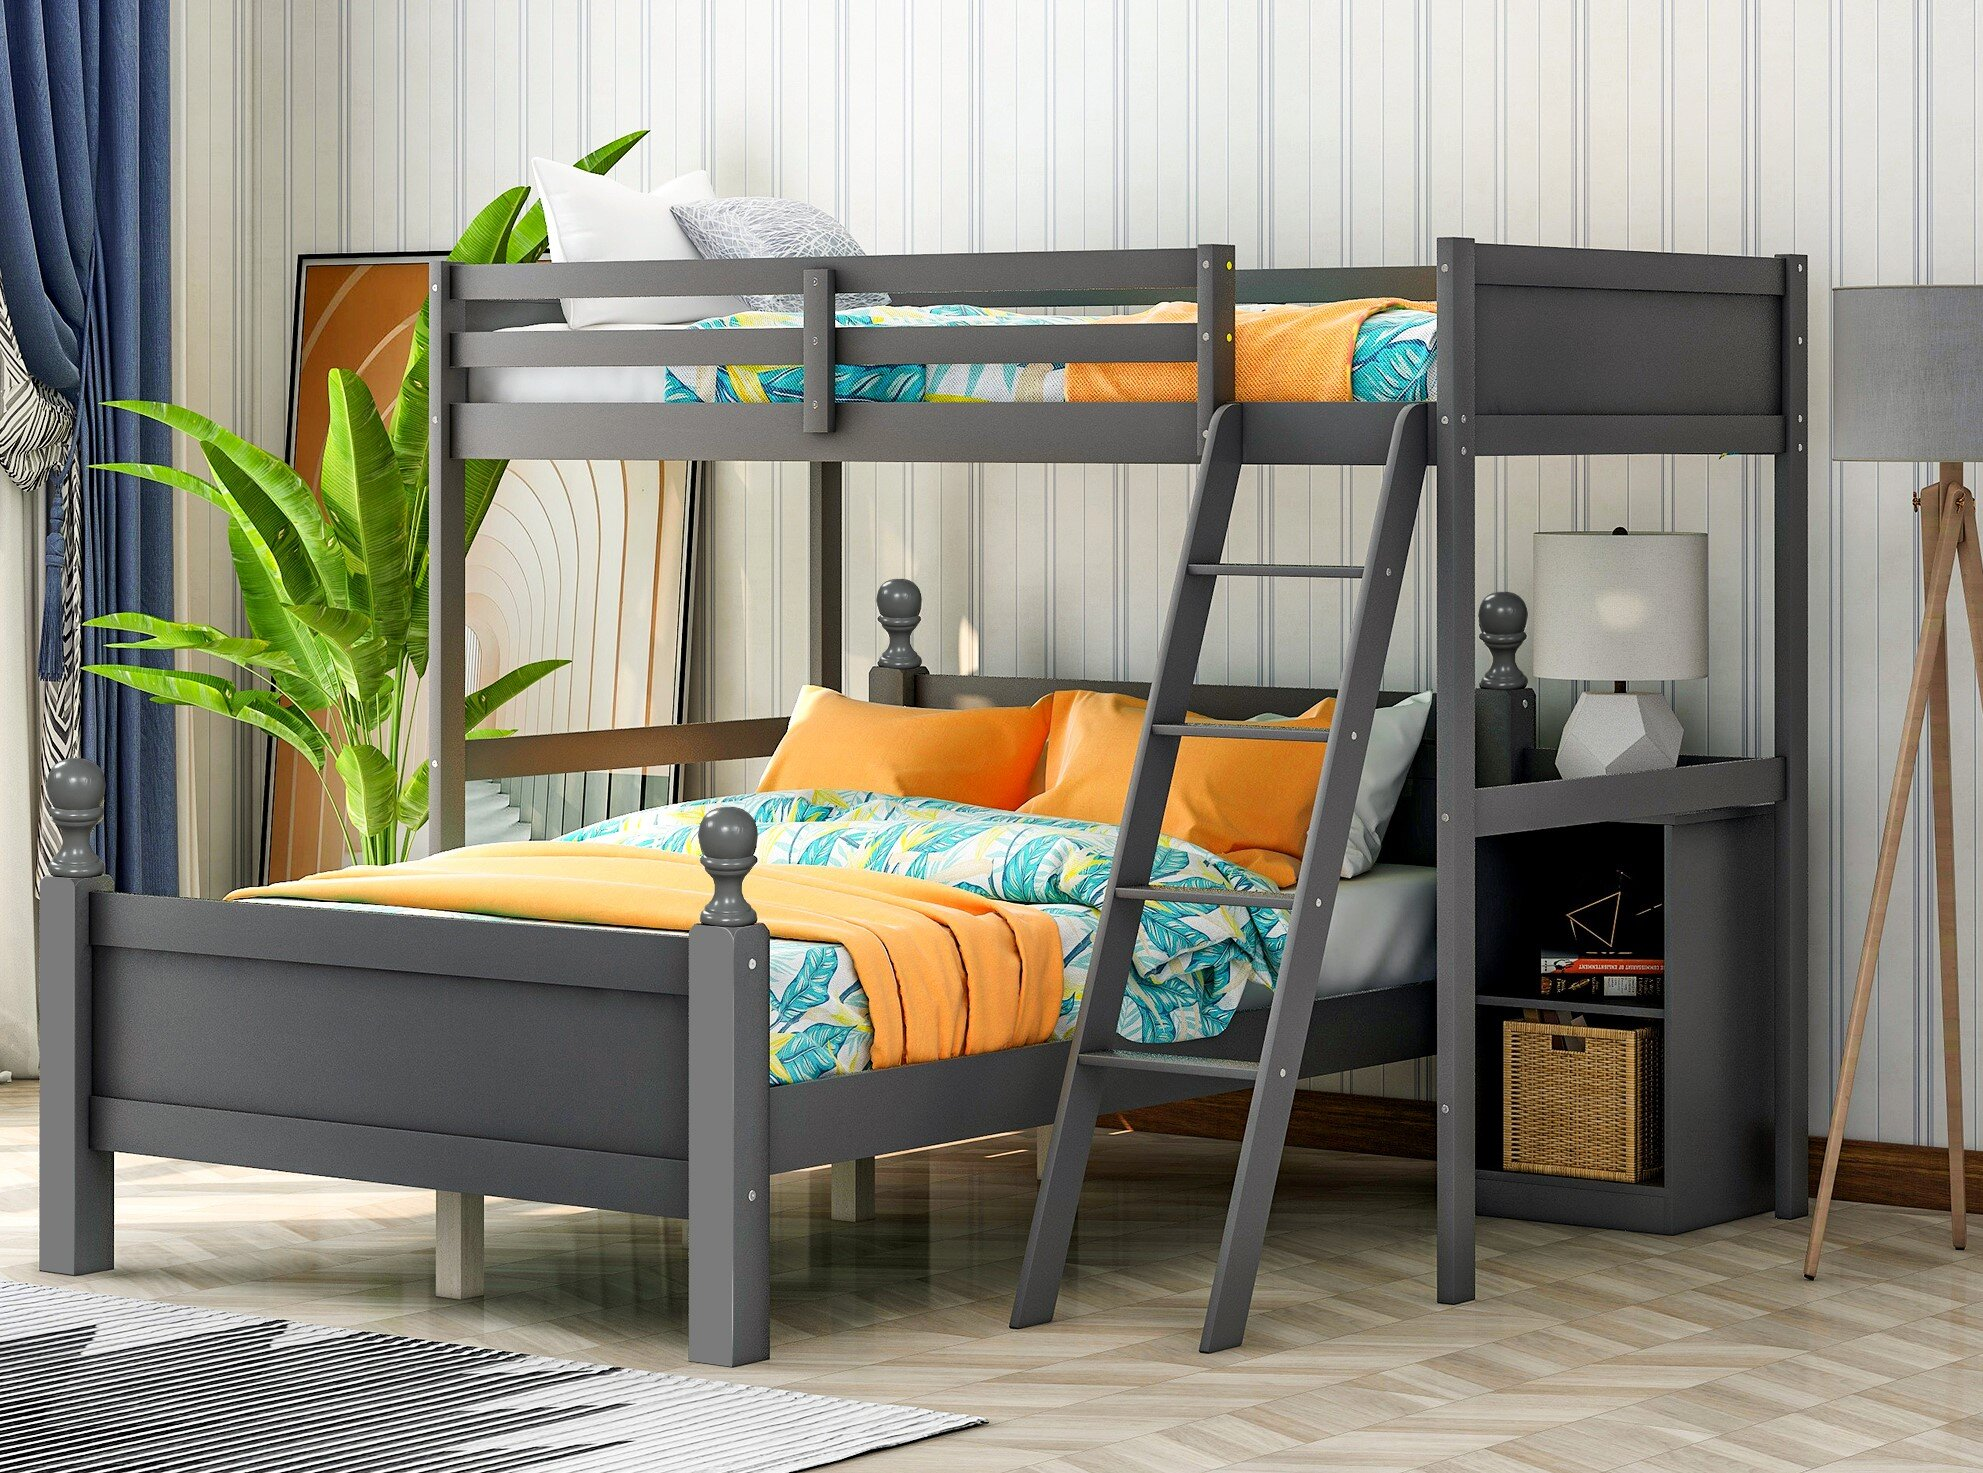 Wayfair L Shaped Bunk Beds You Ll Love In 2021